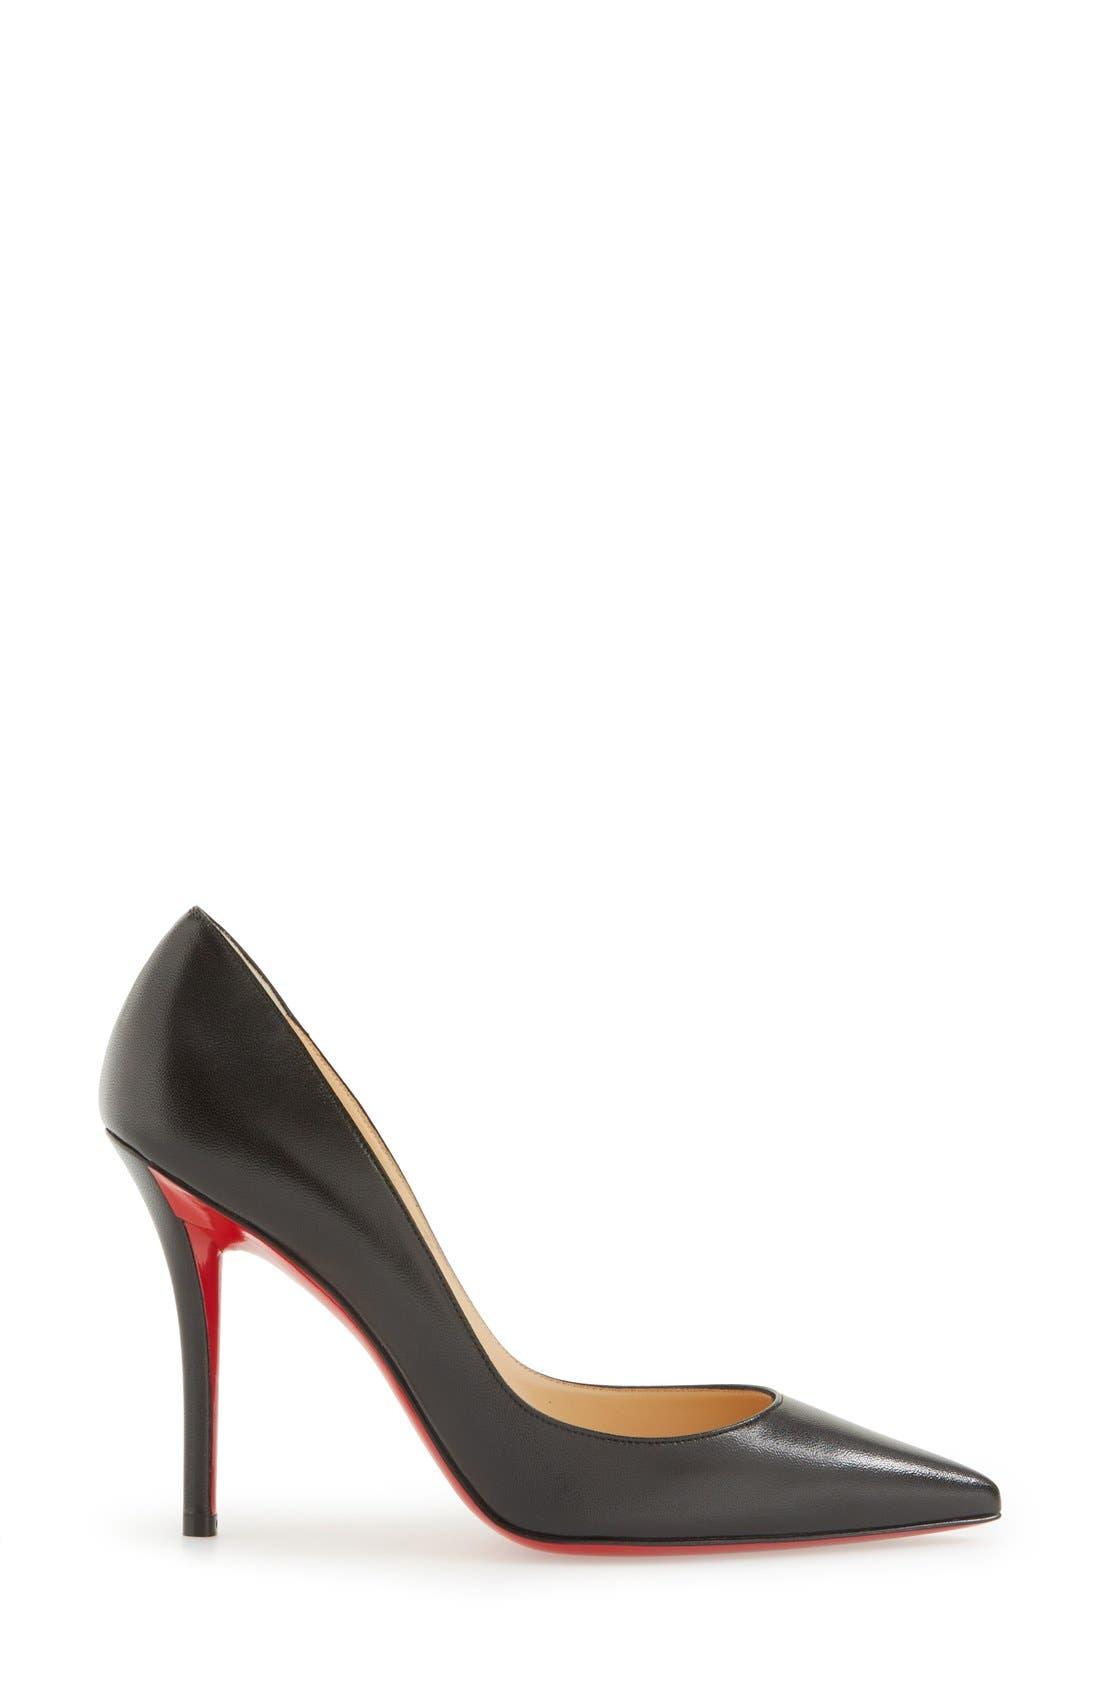 'Apostrophy' Pointy Toe Pump,                             Alternate thumbnail 4, color,                             Black Leather